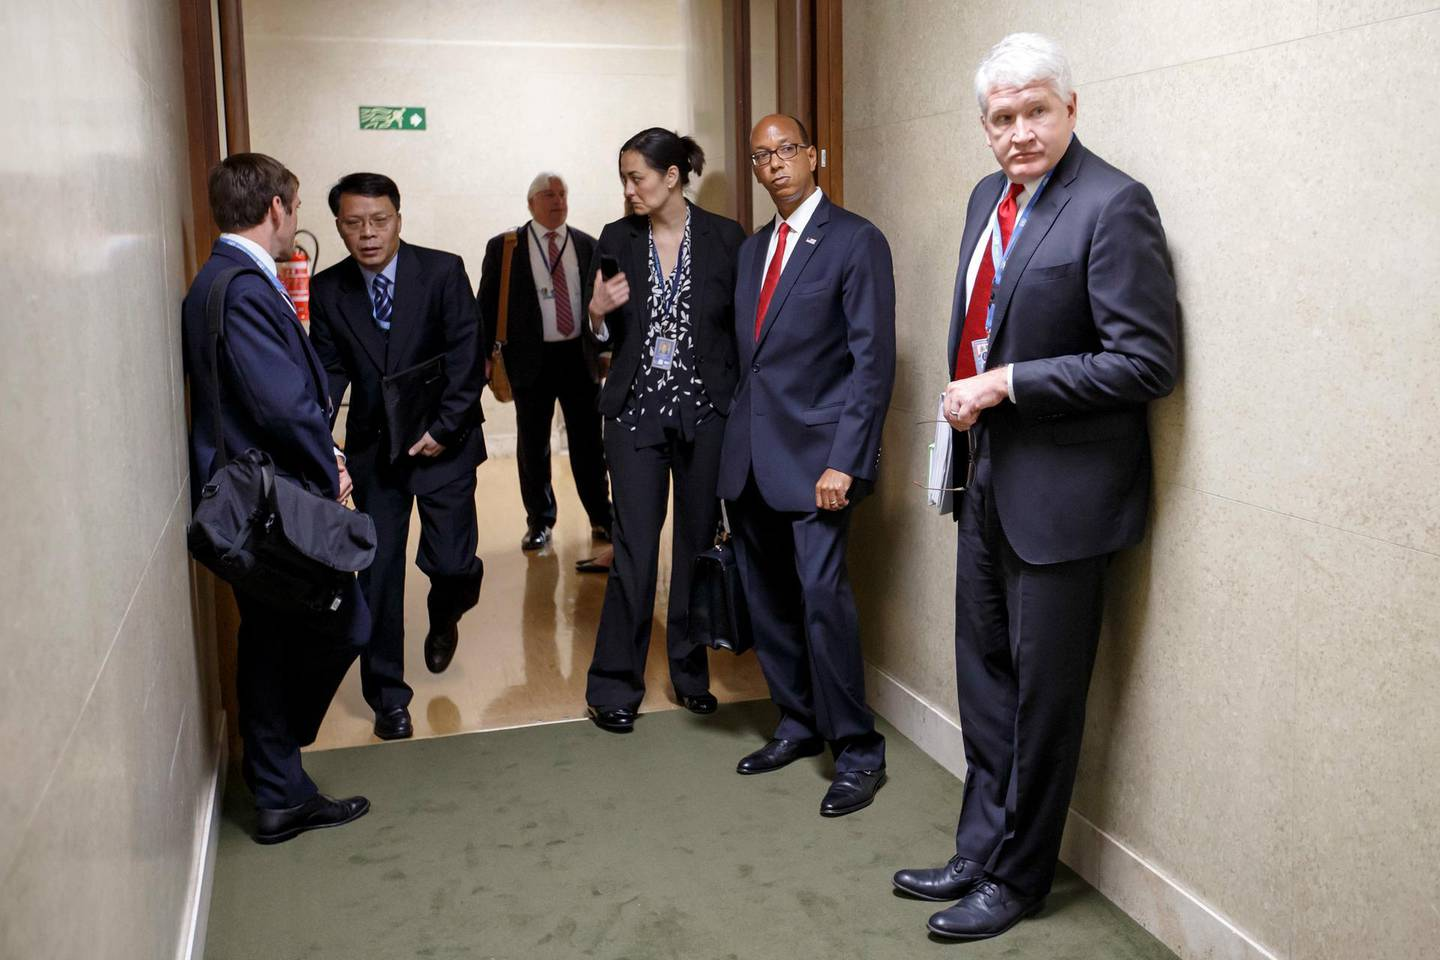 U.S. Disarmament Ambassador Robert Wood, second right, and members of delegations stand in the corridor after he left the conference in protest against Syrian presidency  at the Conference on Disarmament at the European headquarters of the United Nations in Geneva, Switzerland, Tuesday, May 29, 2018. (Salvatore Di Nolfi/Keystone via AP)